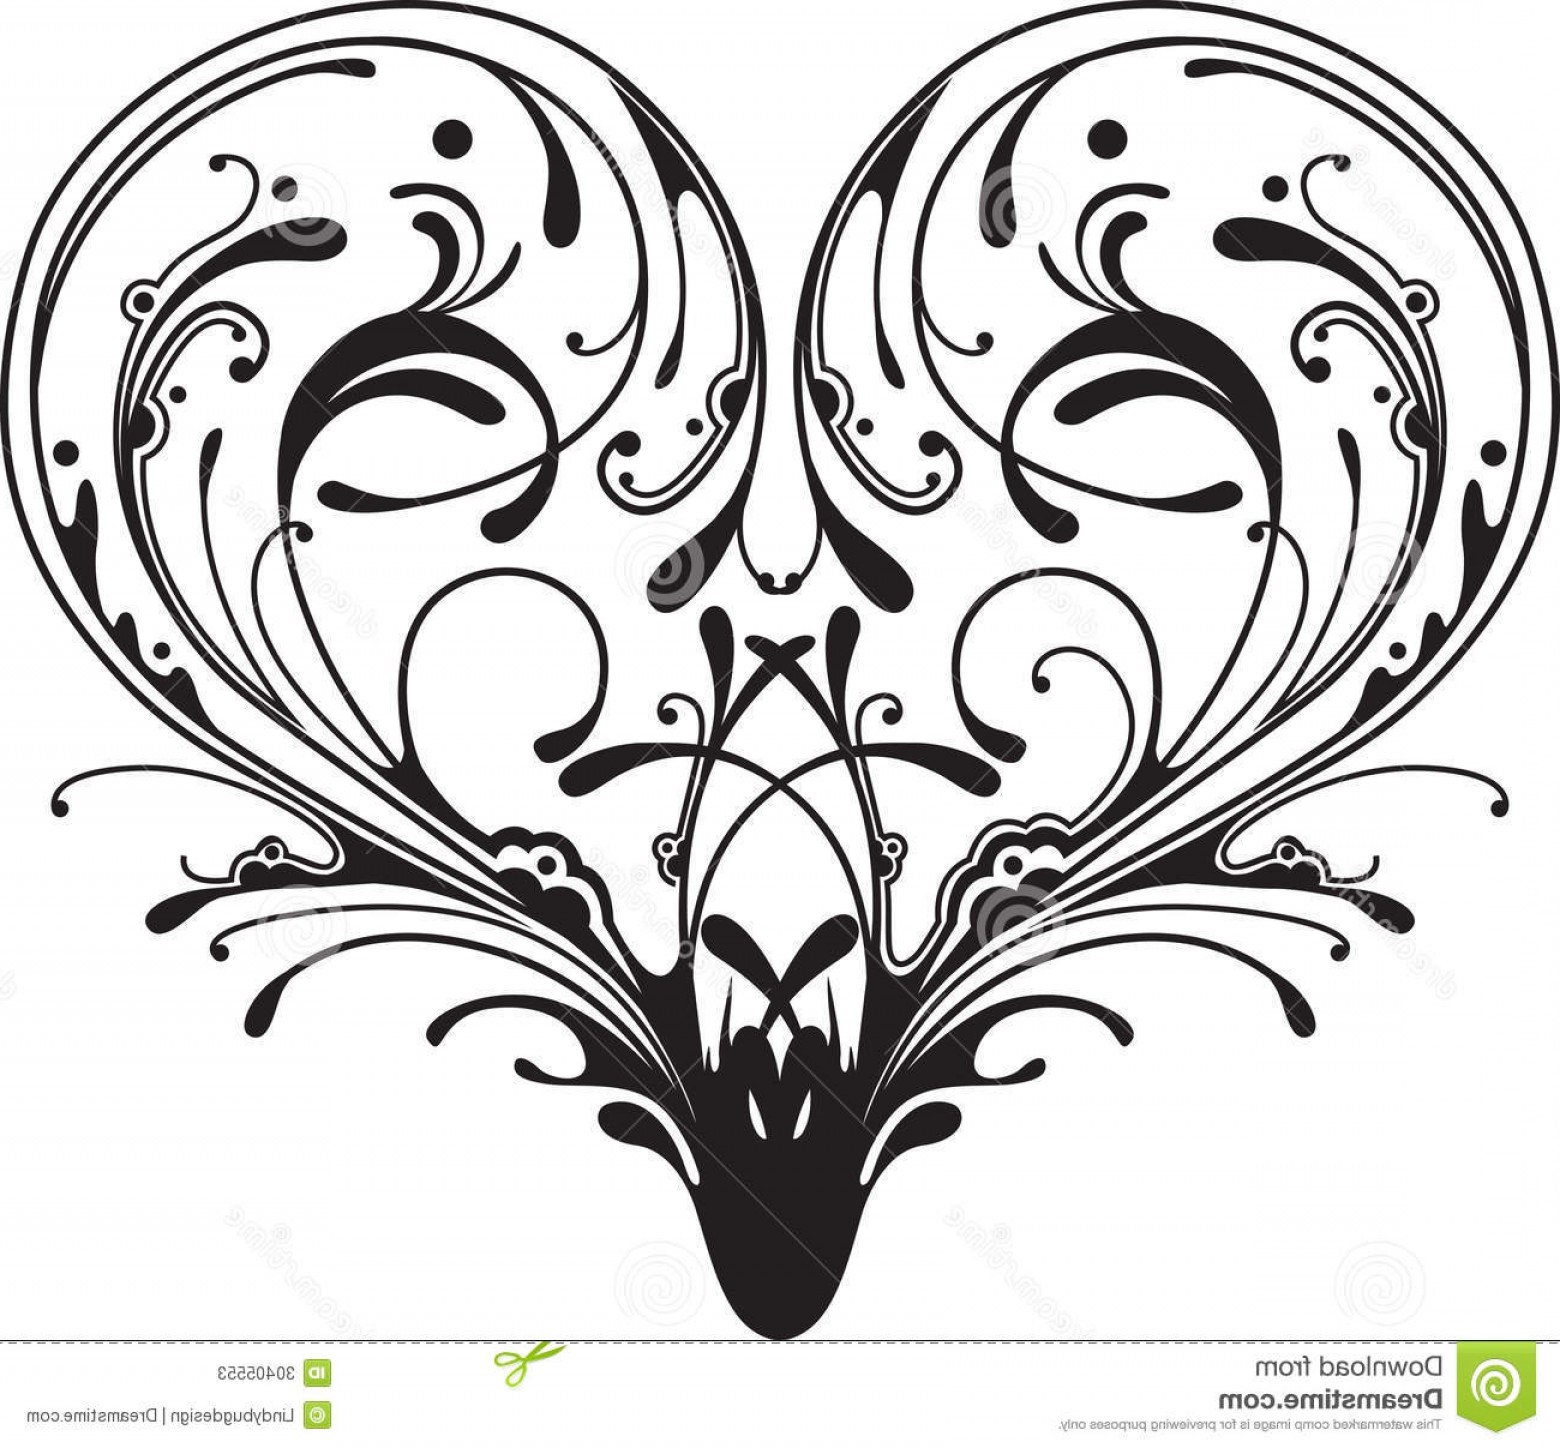 Vector Filigree Heart: Stock Photos Ornate Heart Filigree Made Many Swirly Shapes Image